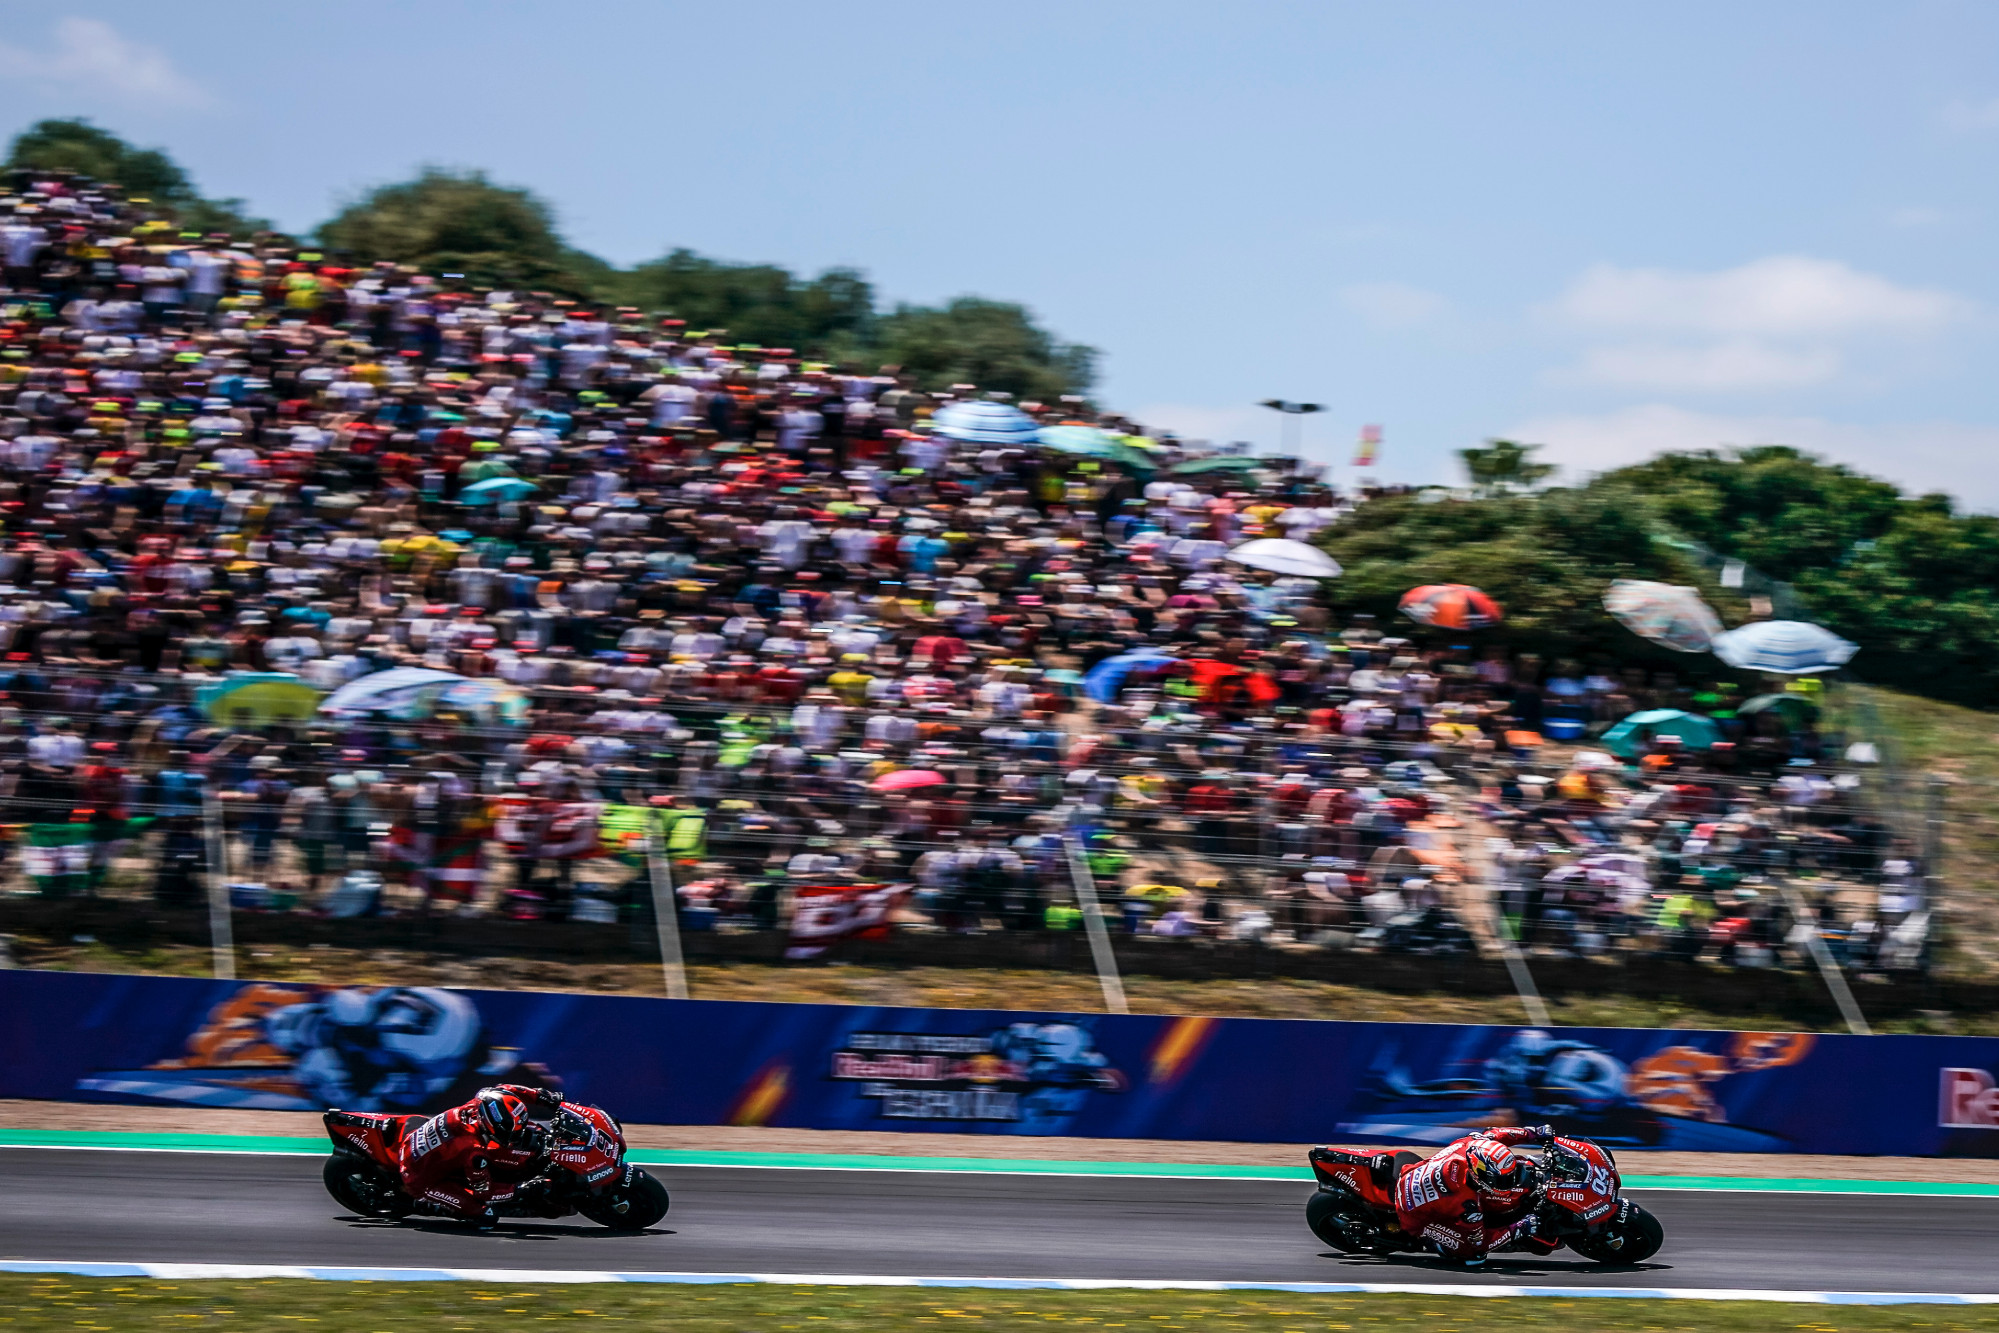 MotoGP season opener to be confirmed this month